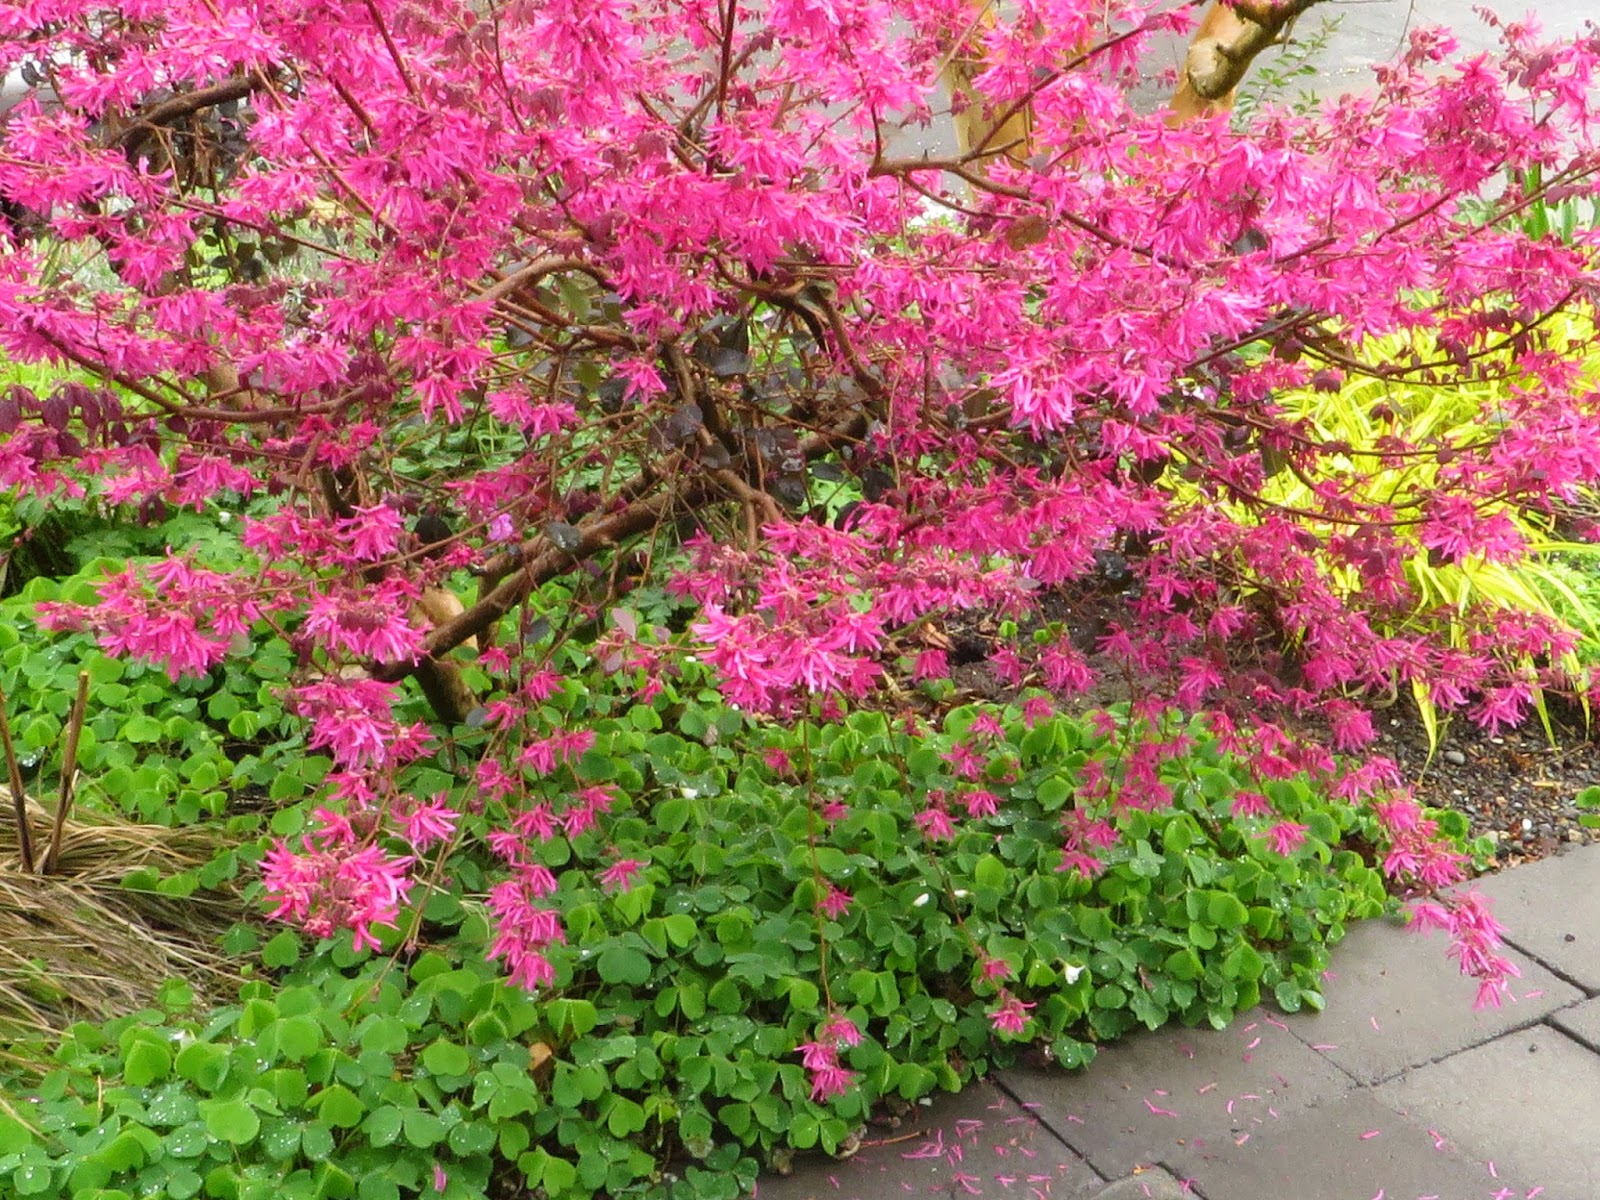 Chickadee gardens in march loropetalum chinense looking sizzling with a carpet of native oxalis oregana at its feet mightylinksfo